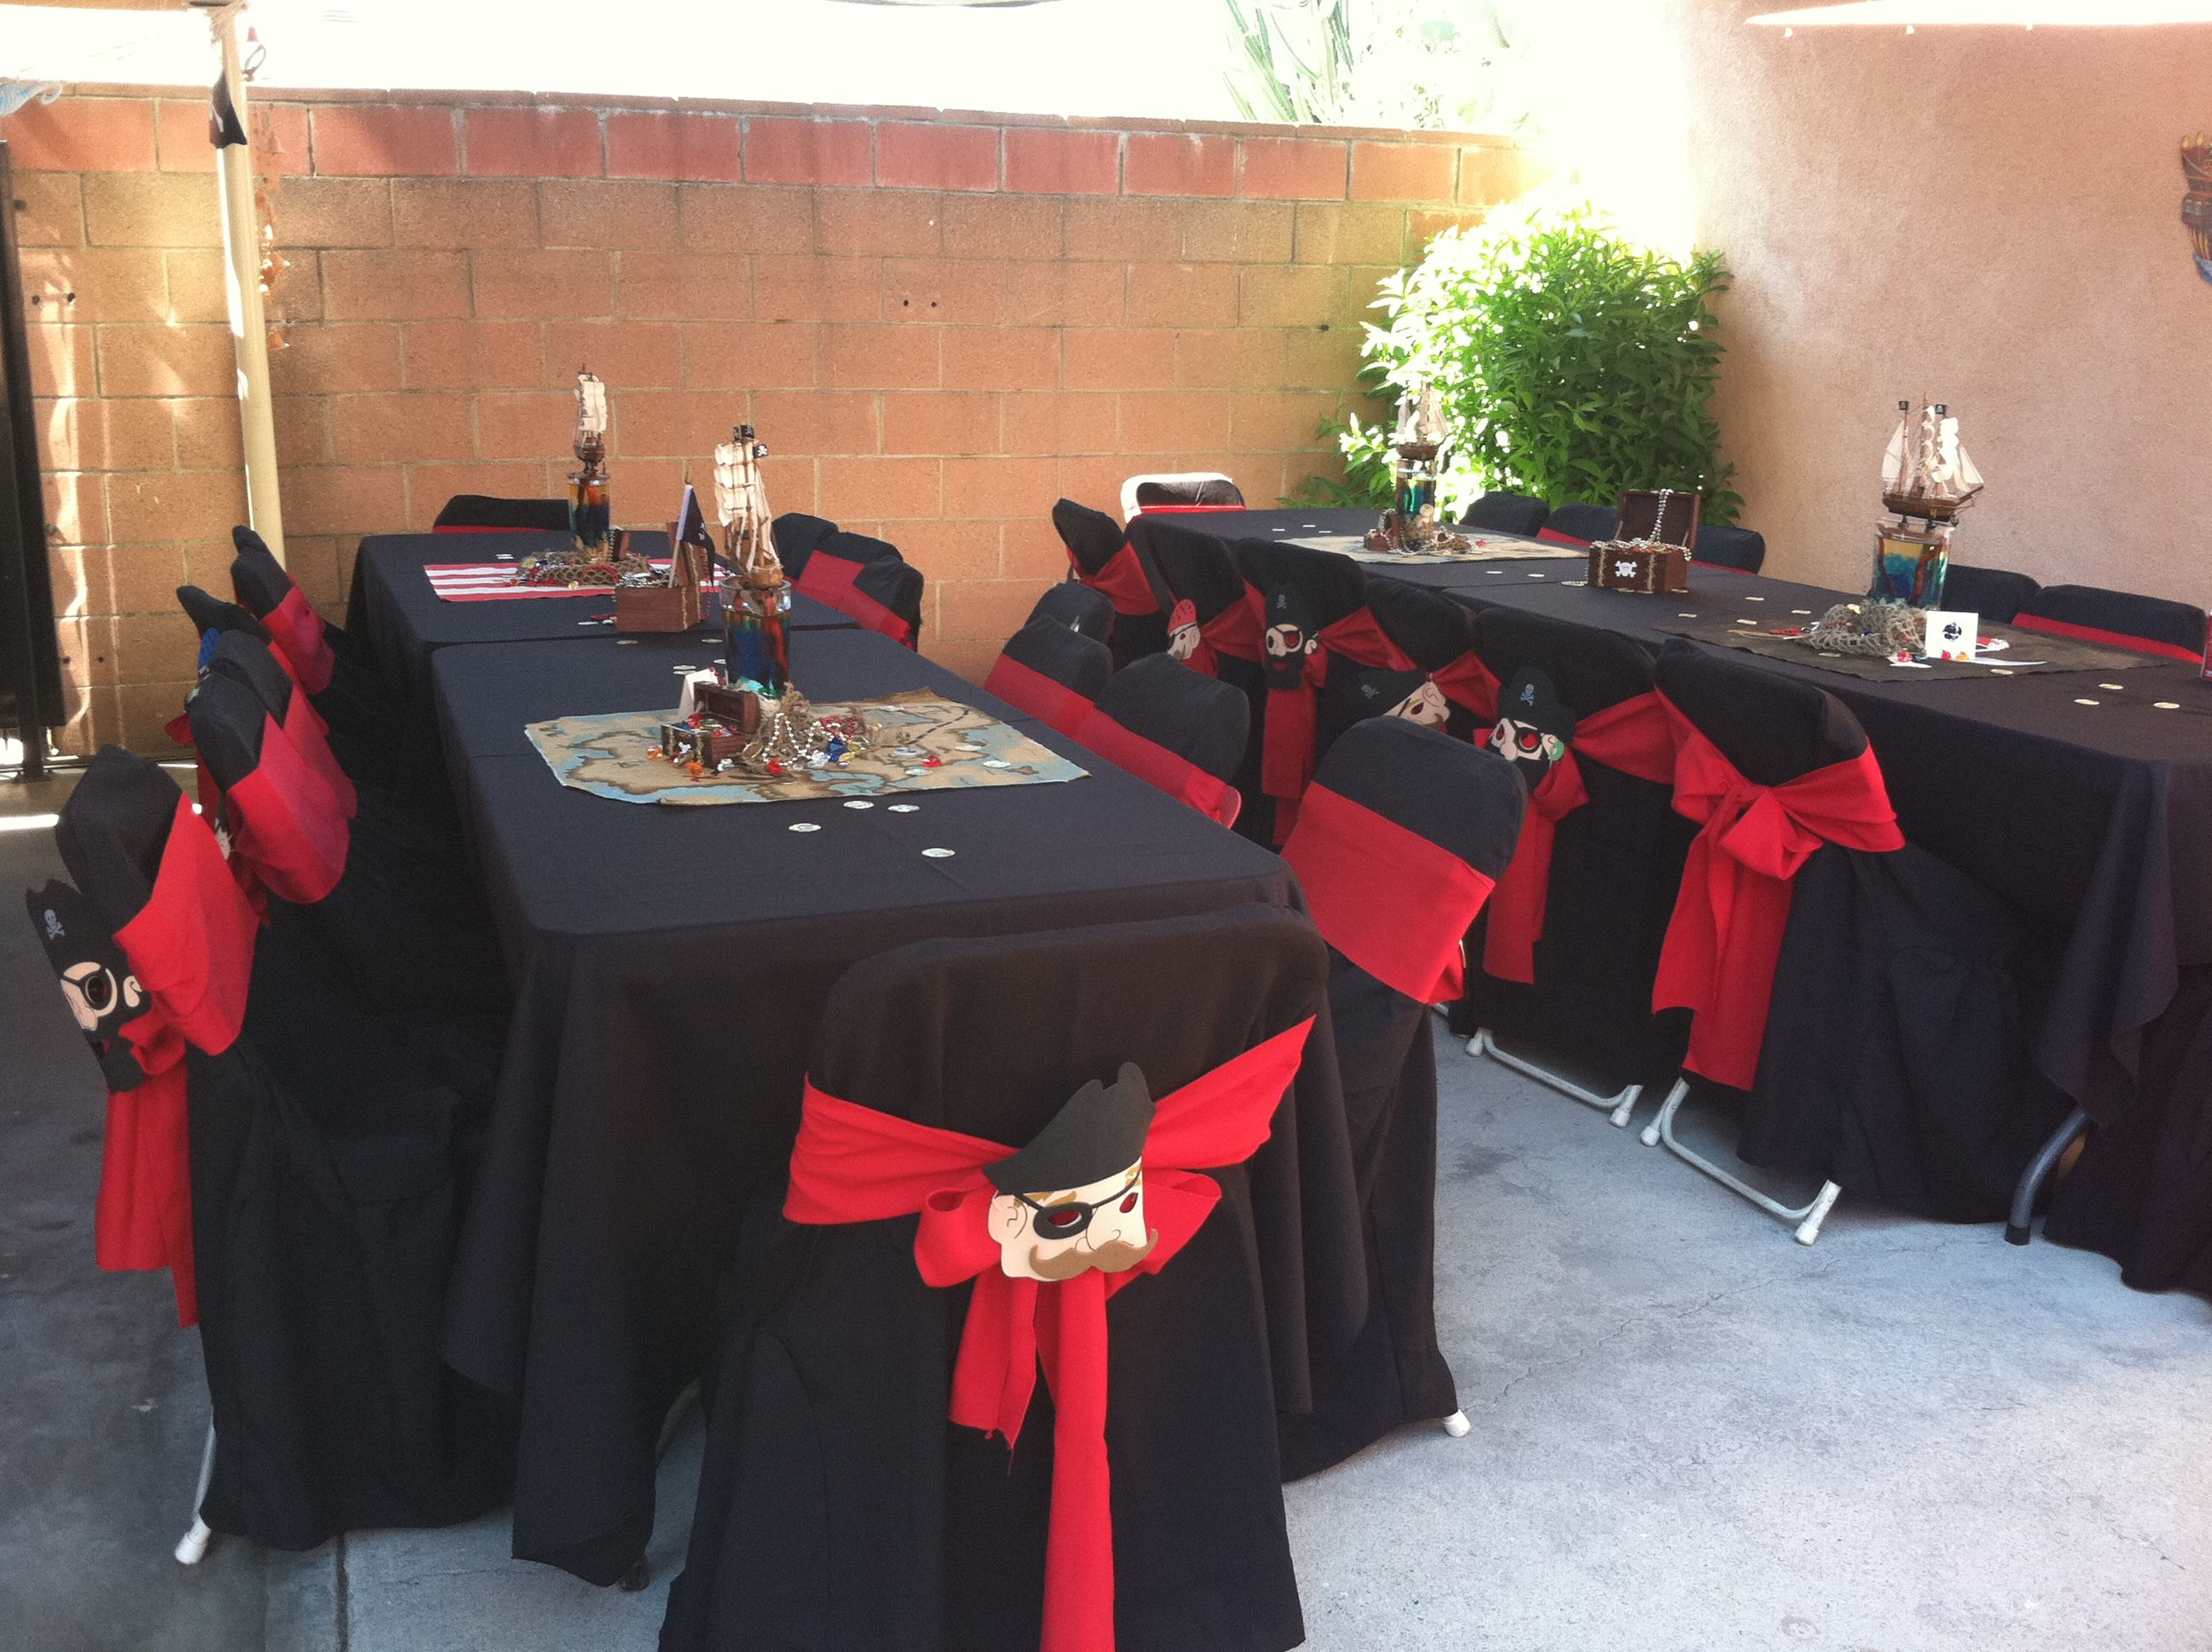 Pirate Party Decoration Black table cloth black chair covers